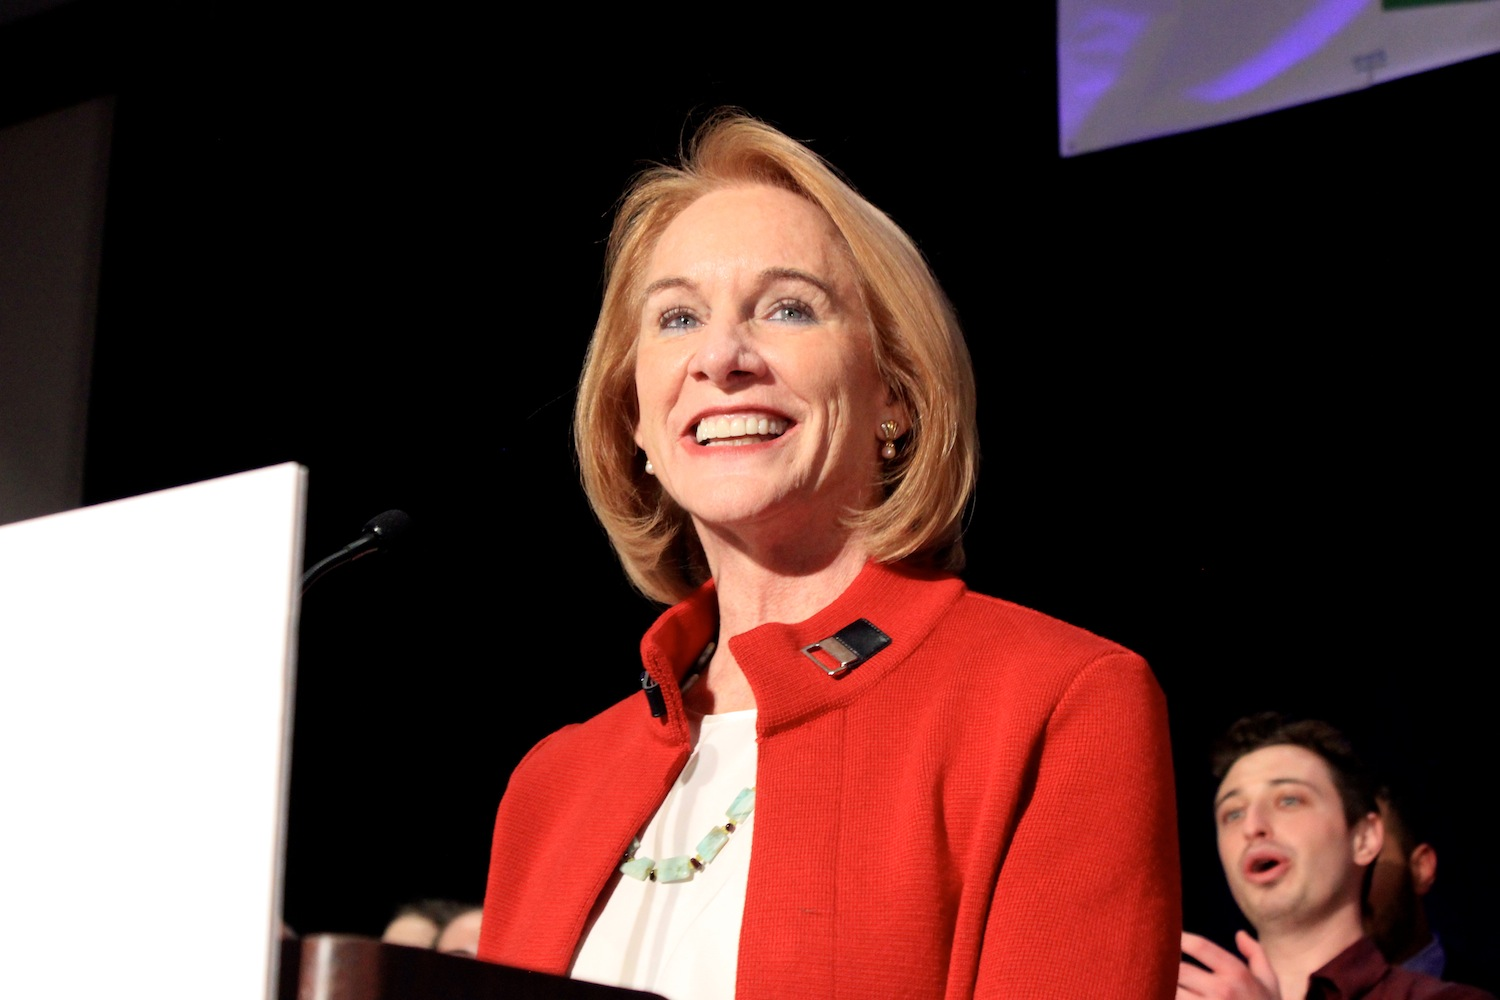 Jenny Durkan smiles after taking the stage at her election night event at the Westin, after the first round of returns showed her with a commanding lead over opponent Cary Moon. Photo by Joe Veyera